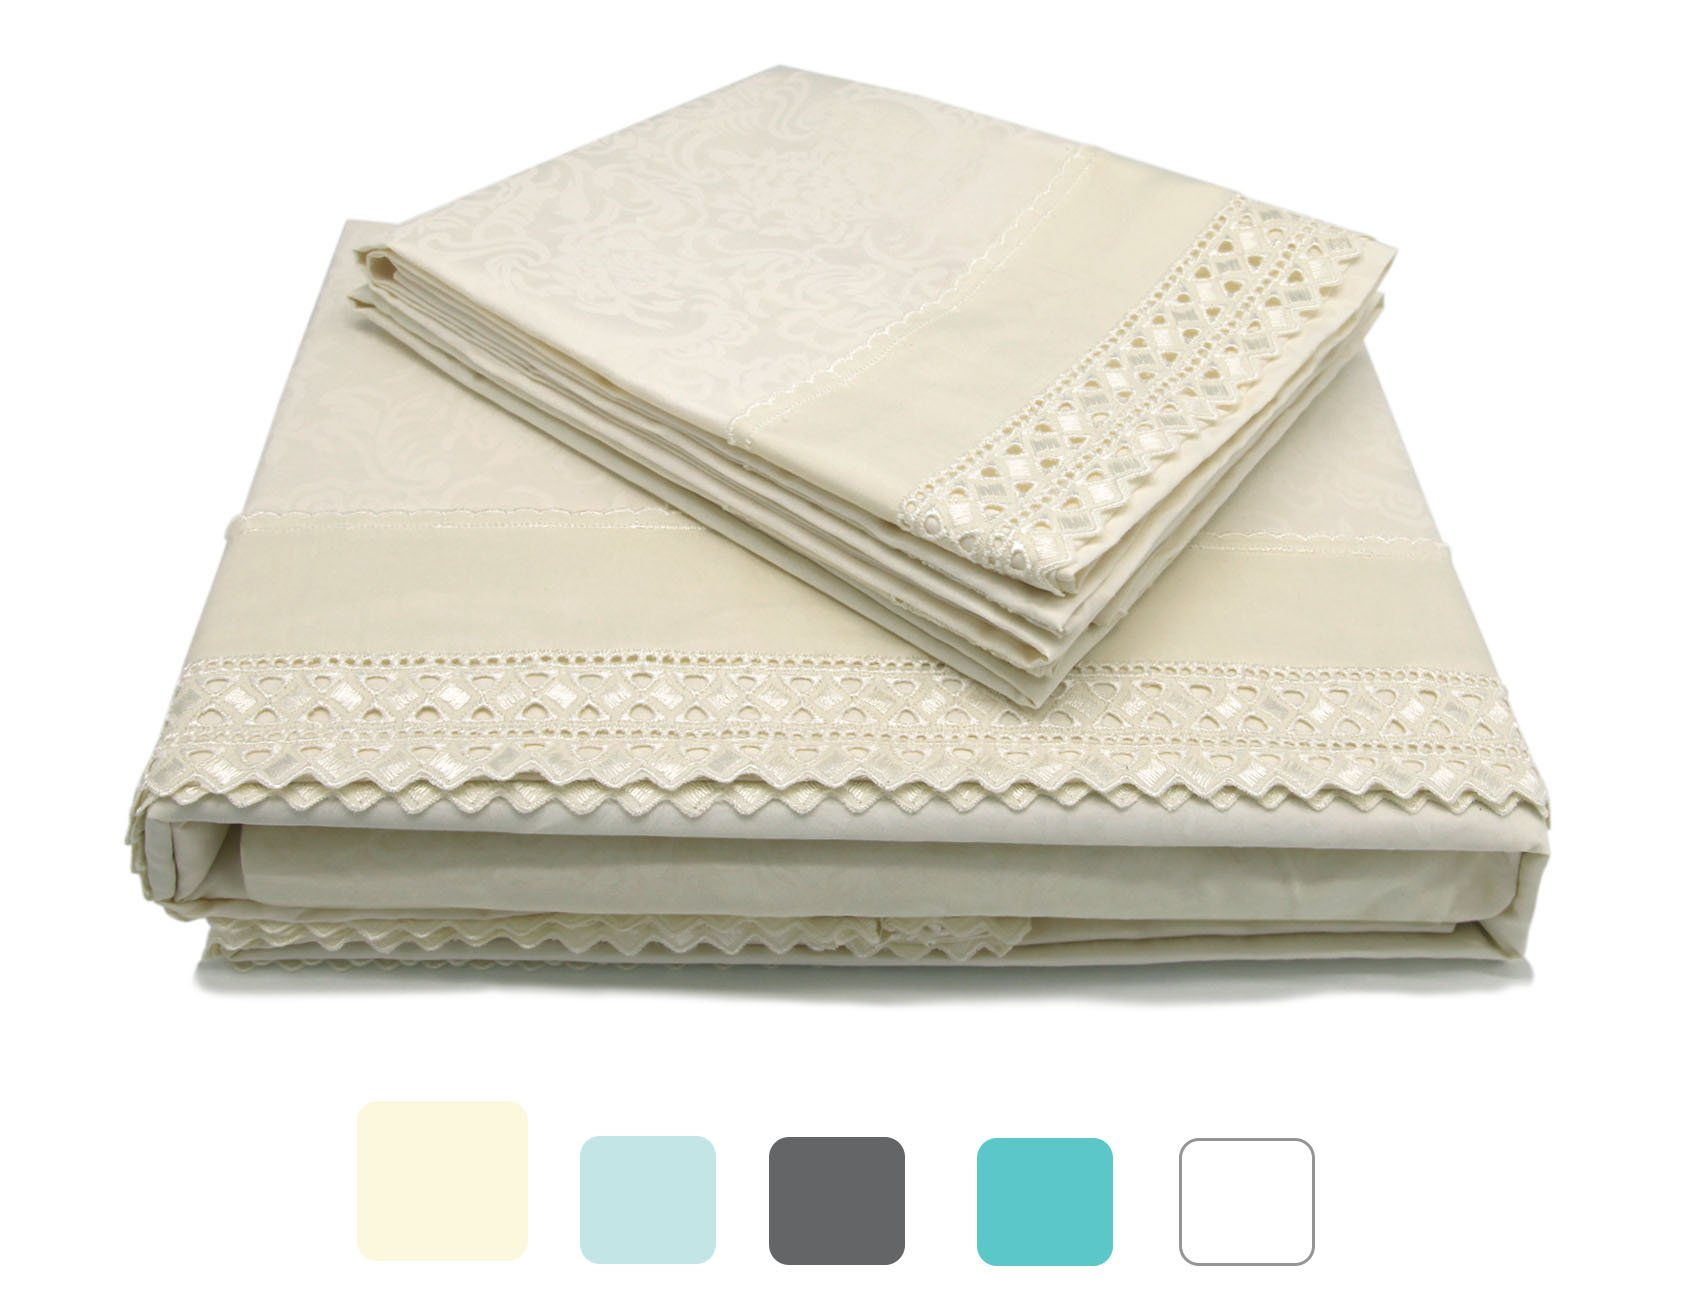 MARQUESS Microfiber Sheet Set-100% Brushed Lace Breathable Lightweight 4-Piece Sheets, Wrinkle Resistant, Soft& Cool Embroidery Bedding Summer Damask Style Printing Design(Cream, King)